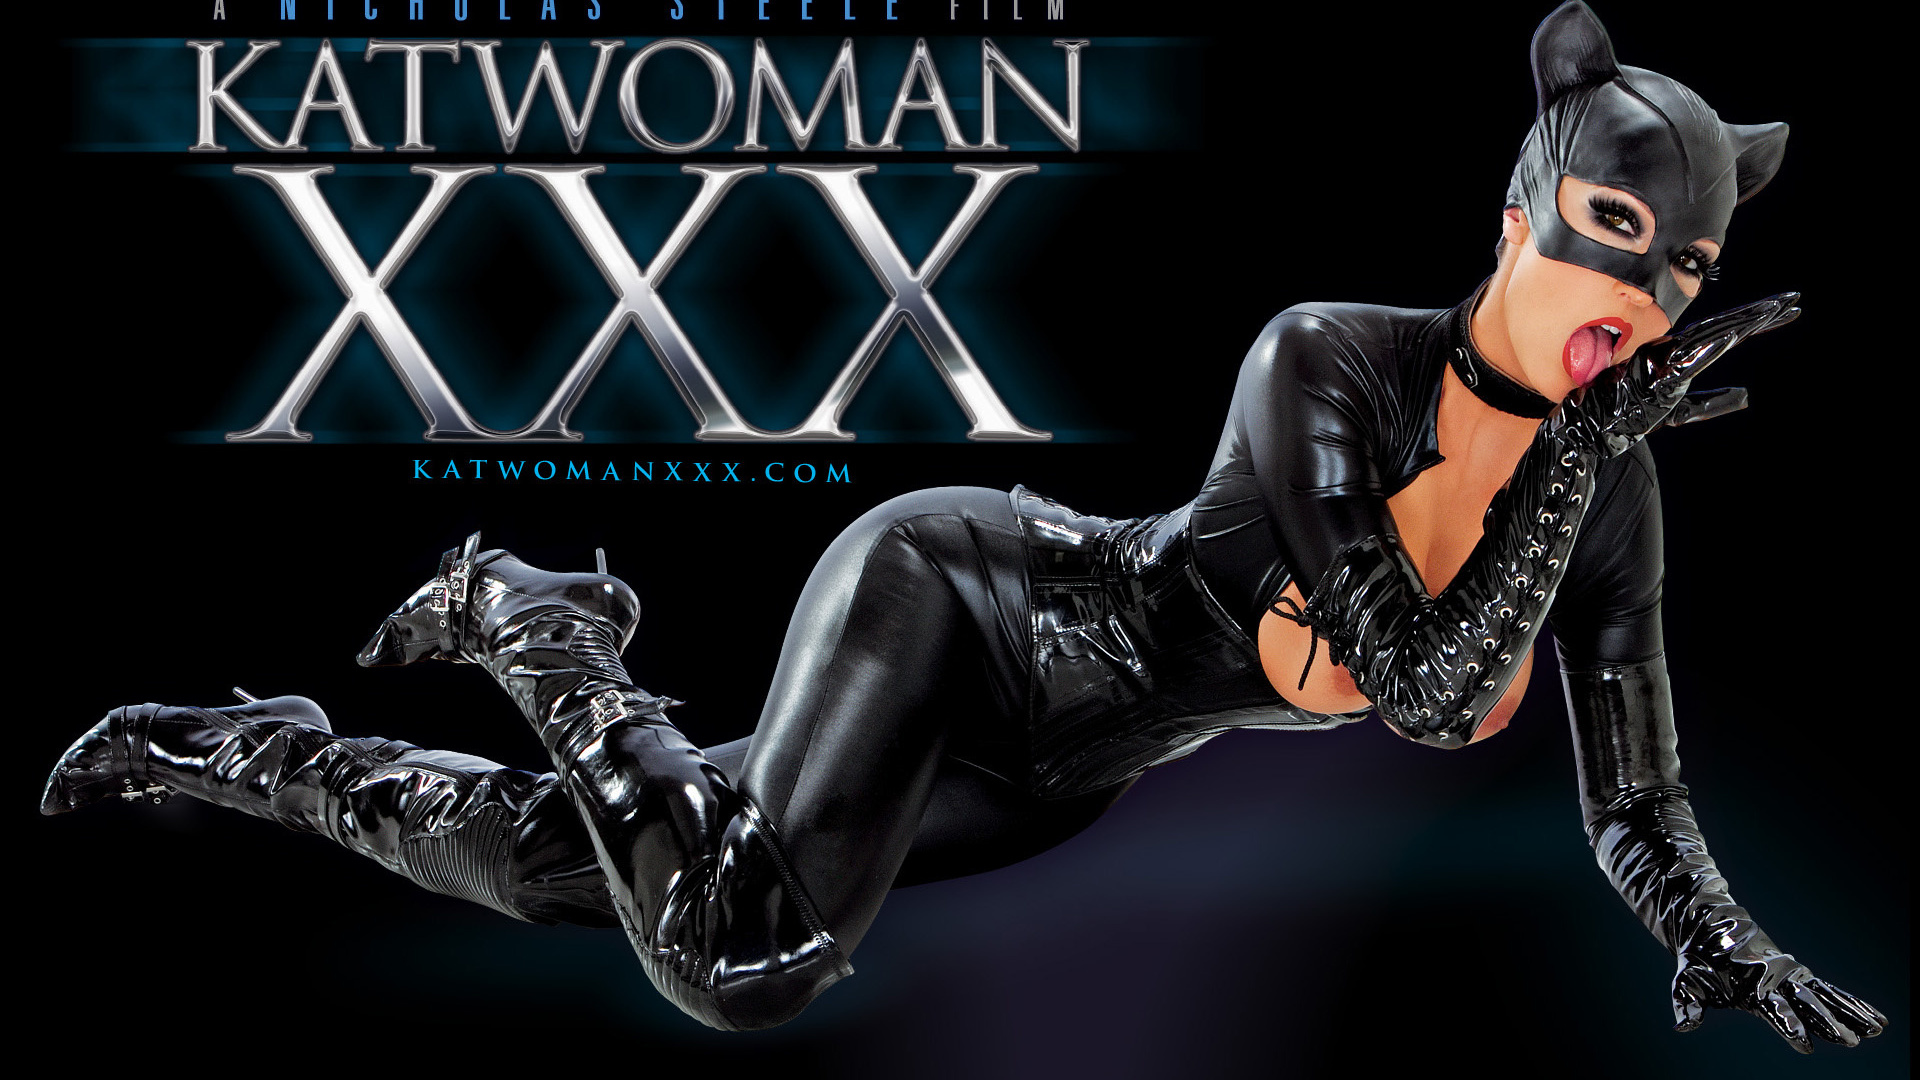 Catwoman xxx video download hentai video